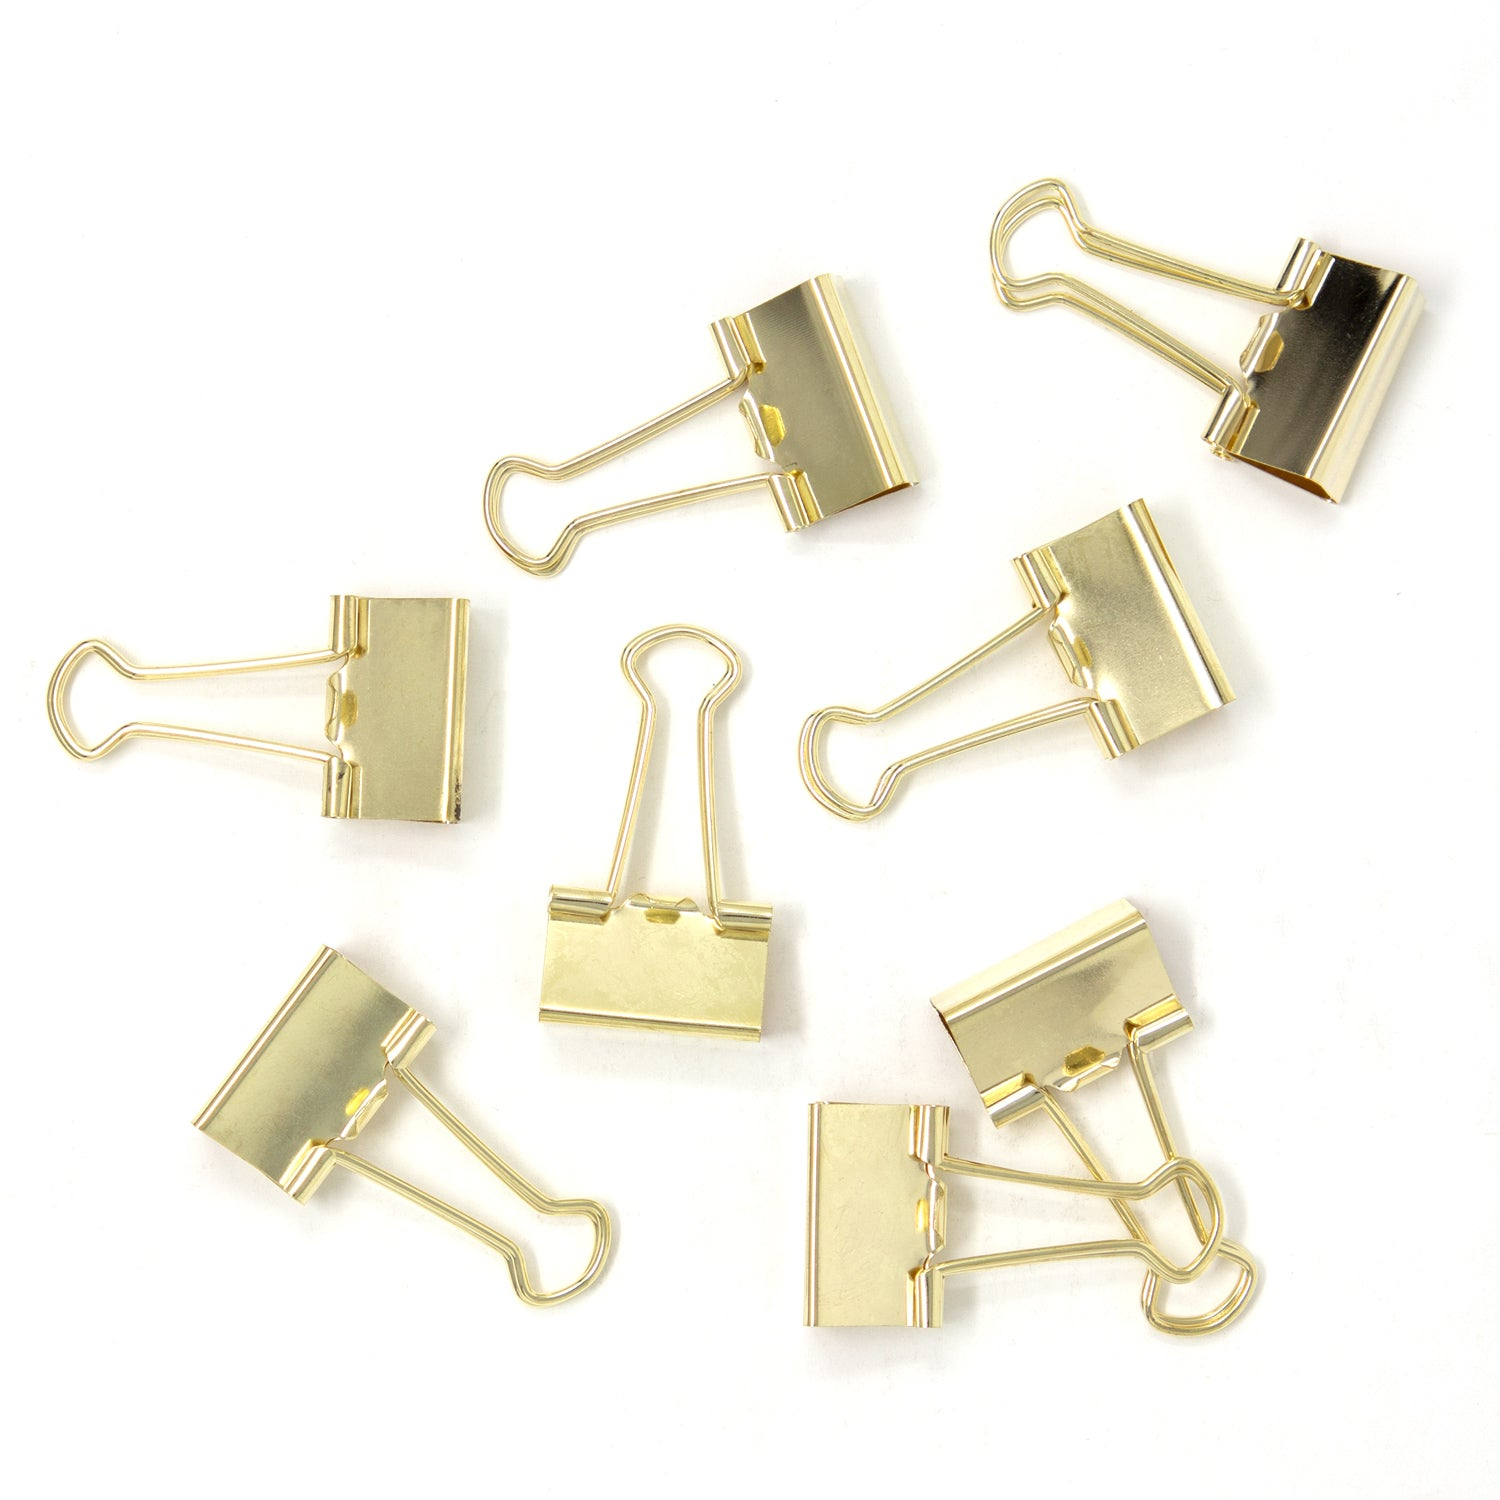 Gold Binder Clips - (Set of 8)